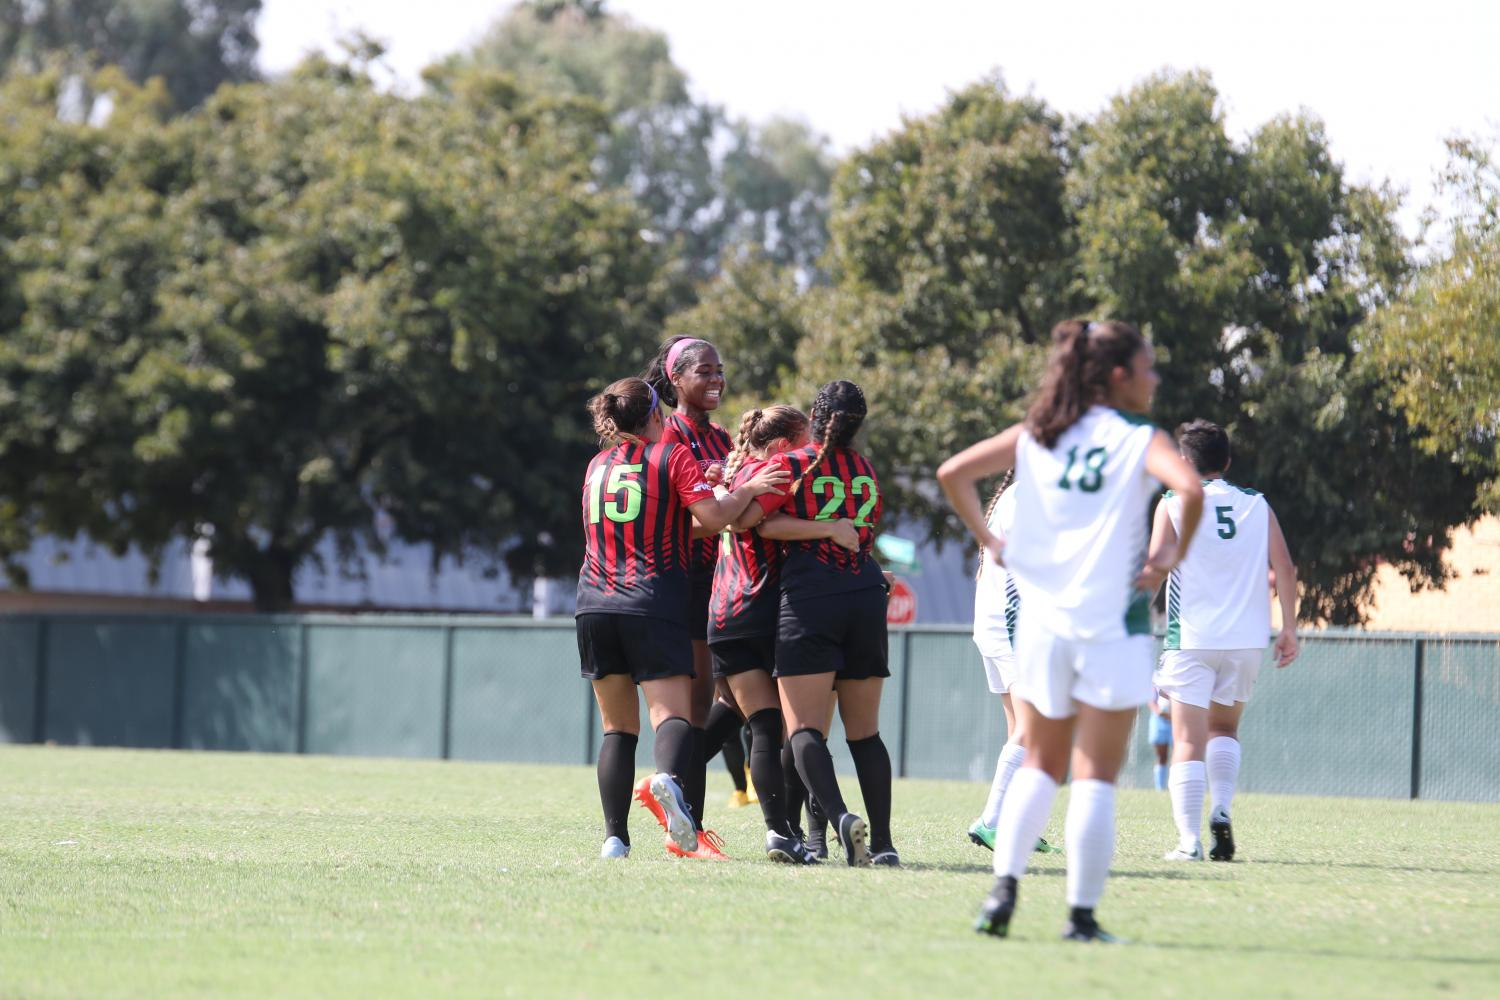 Fresno City College Women's Soccer celebrate after scoring a goal against Evergreen Valley College on Saturday Sept. 16, 2017.